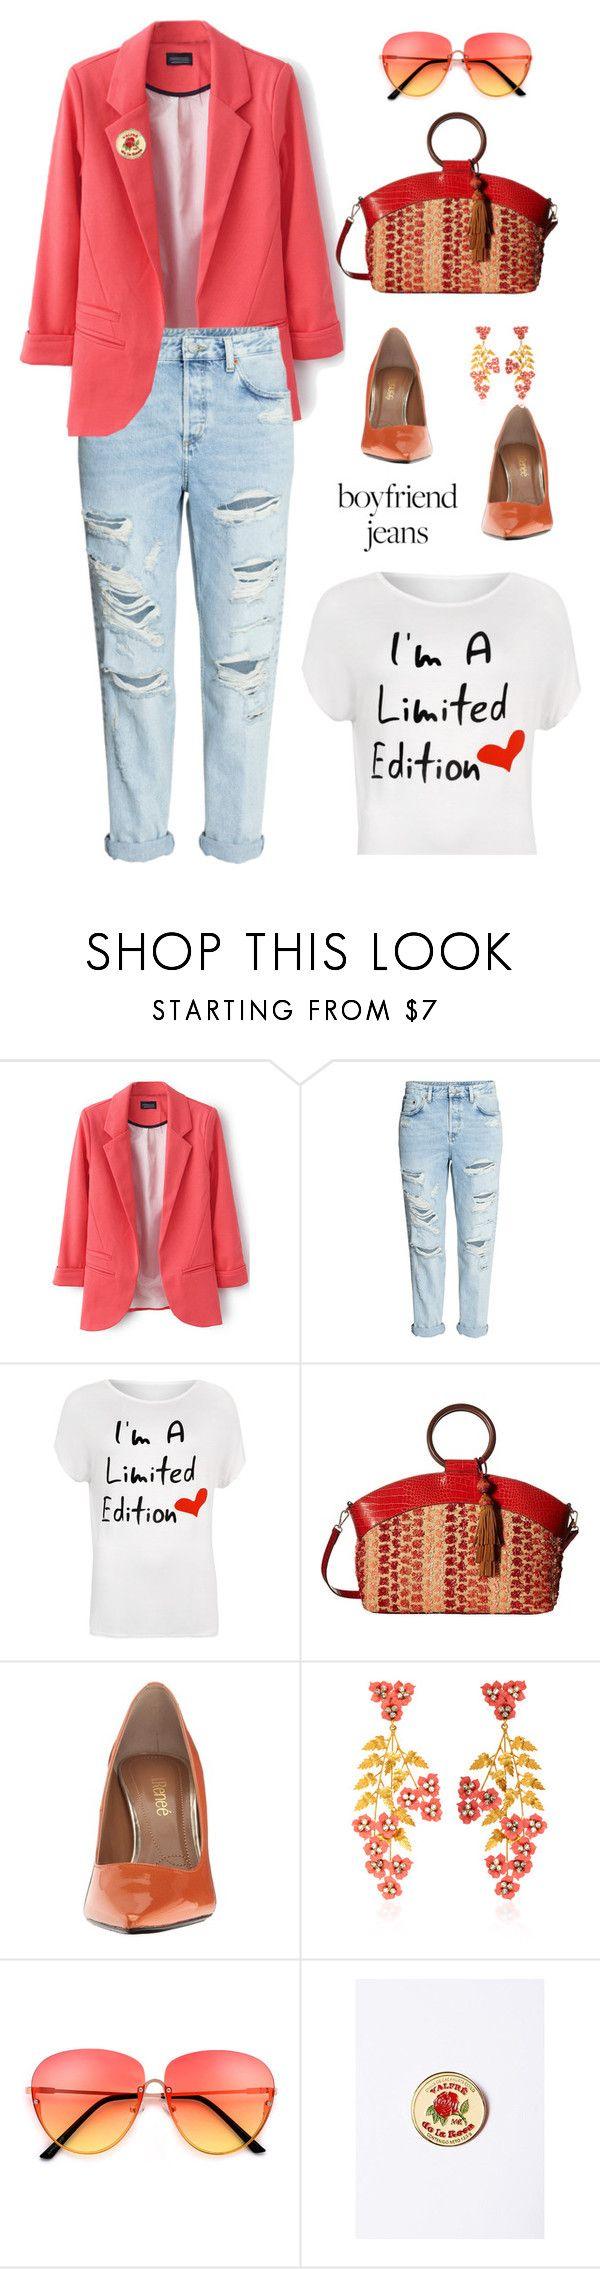 """Boyfriend Jeans"" by lence-59 ❤ liked on Polyvore featuring H&M, WearAll, Sam Edelman, J.Reneé, Jennifer Behr, boyfriendjeans and plus size clothing"